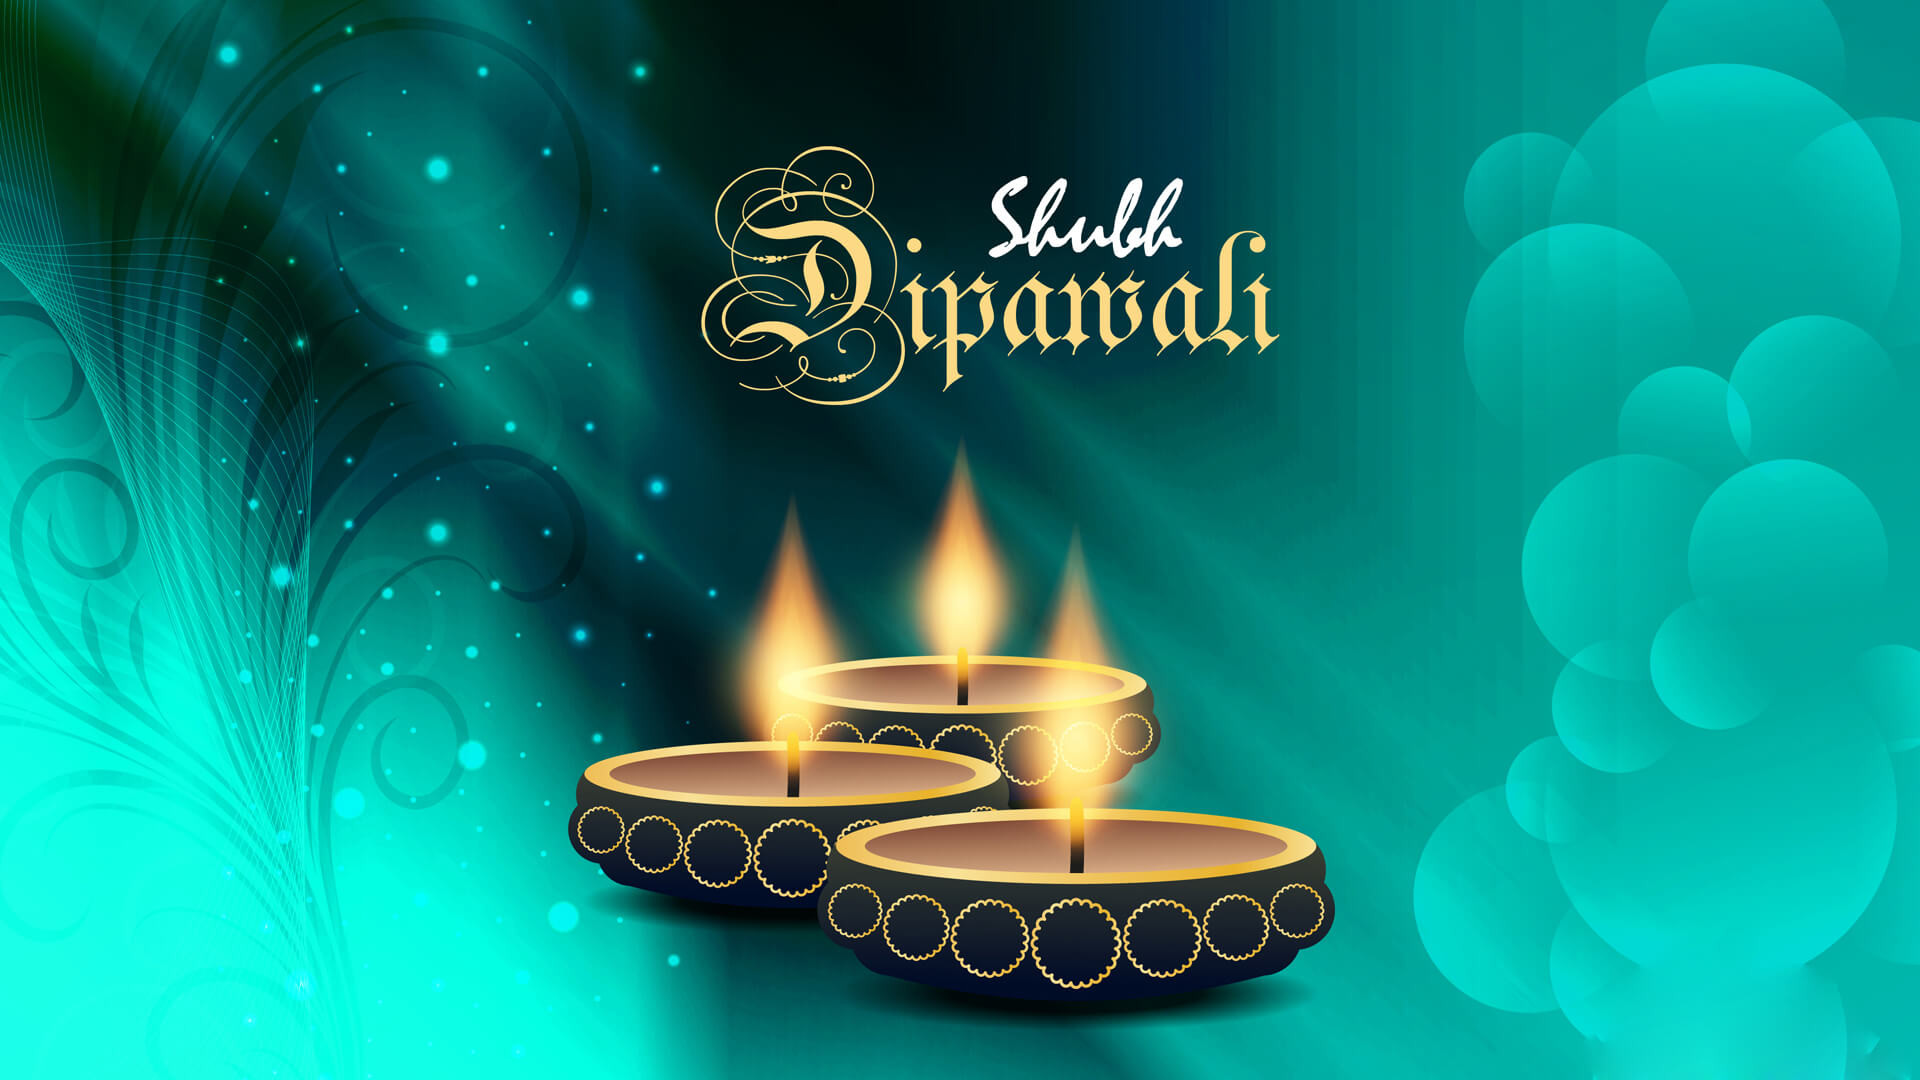 … happy diwali 2016 hd wallpapers images deepavali wishes …